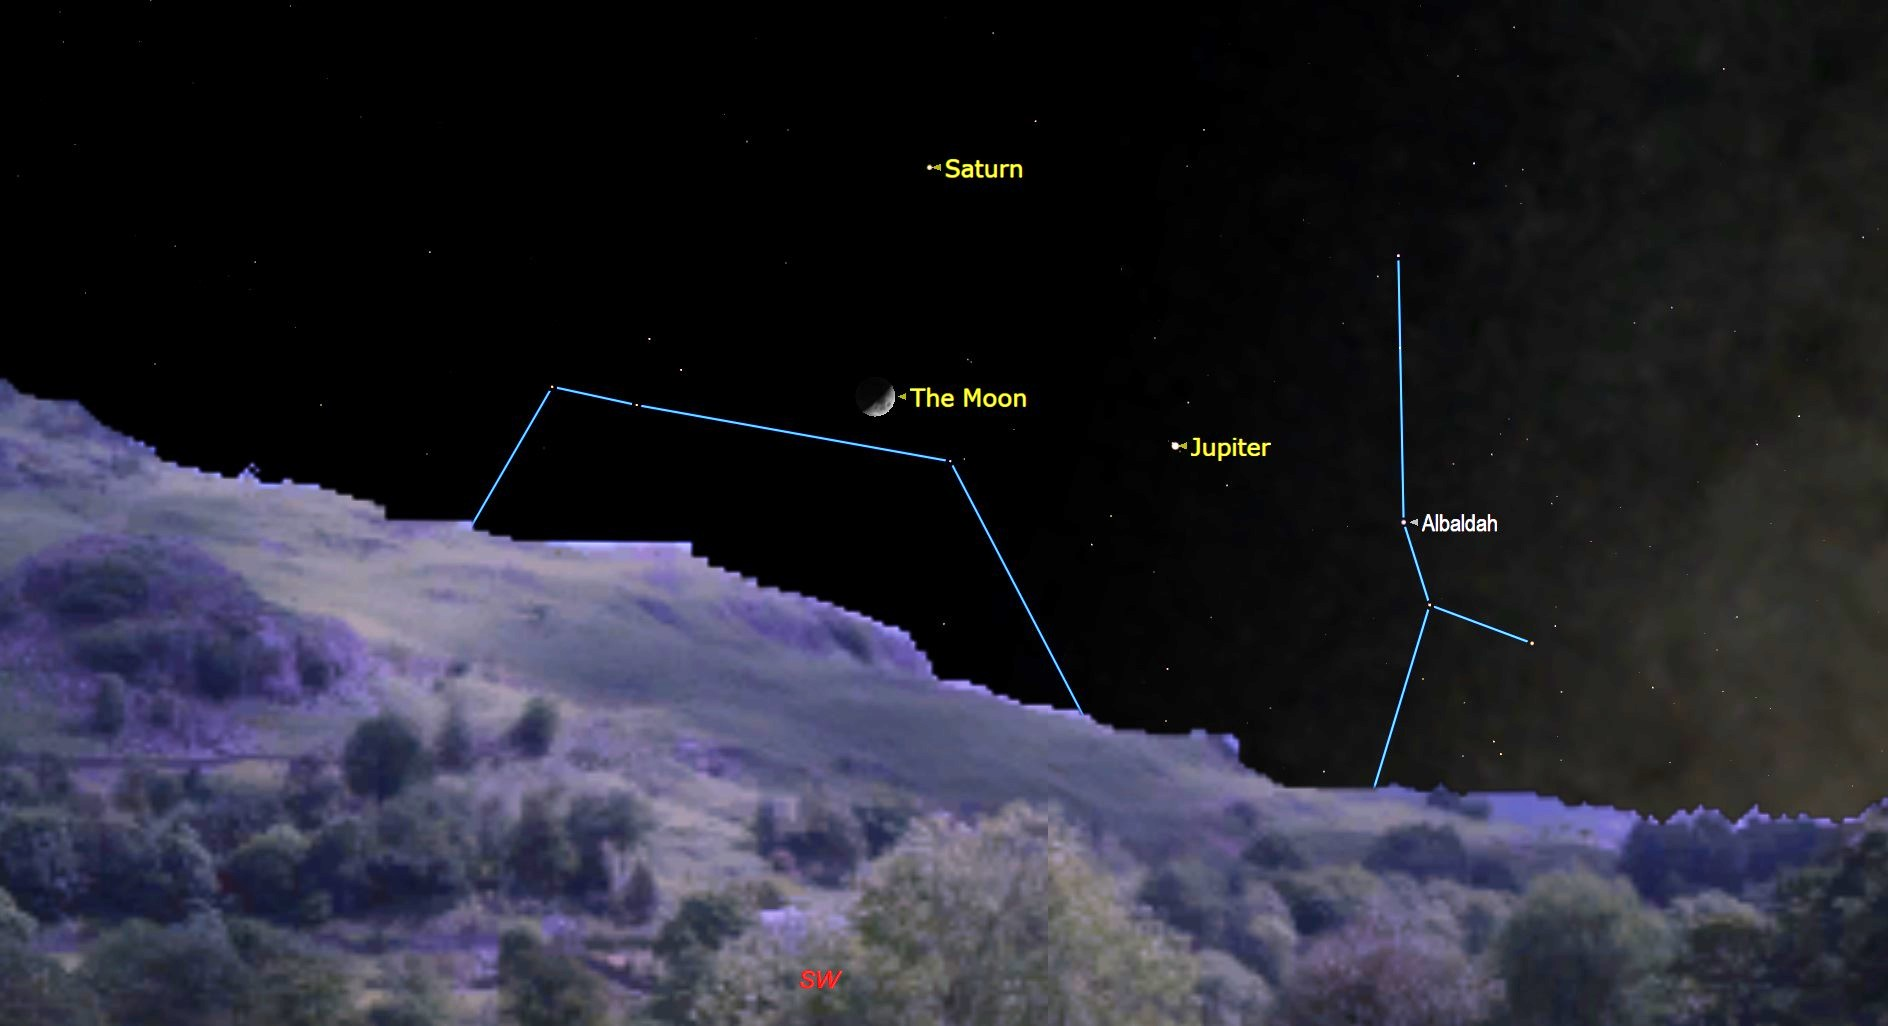 Look up! The moon will pay Jupiter and Saturn a visit tonight